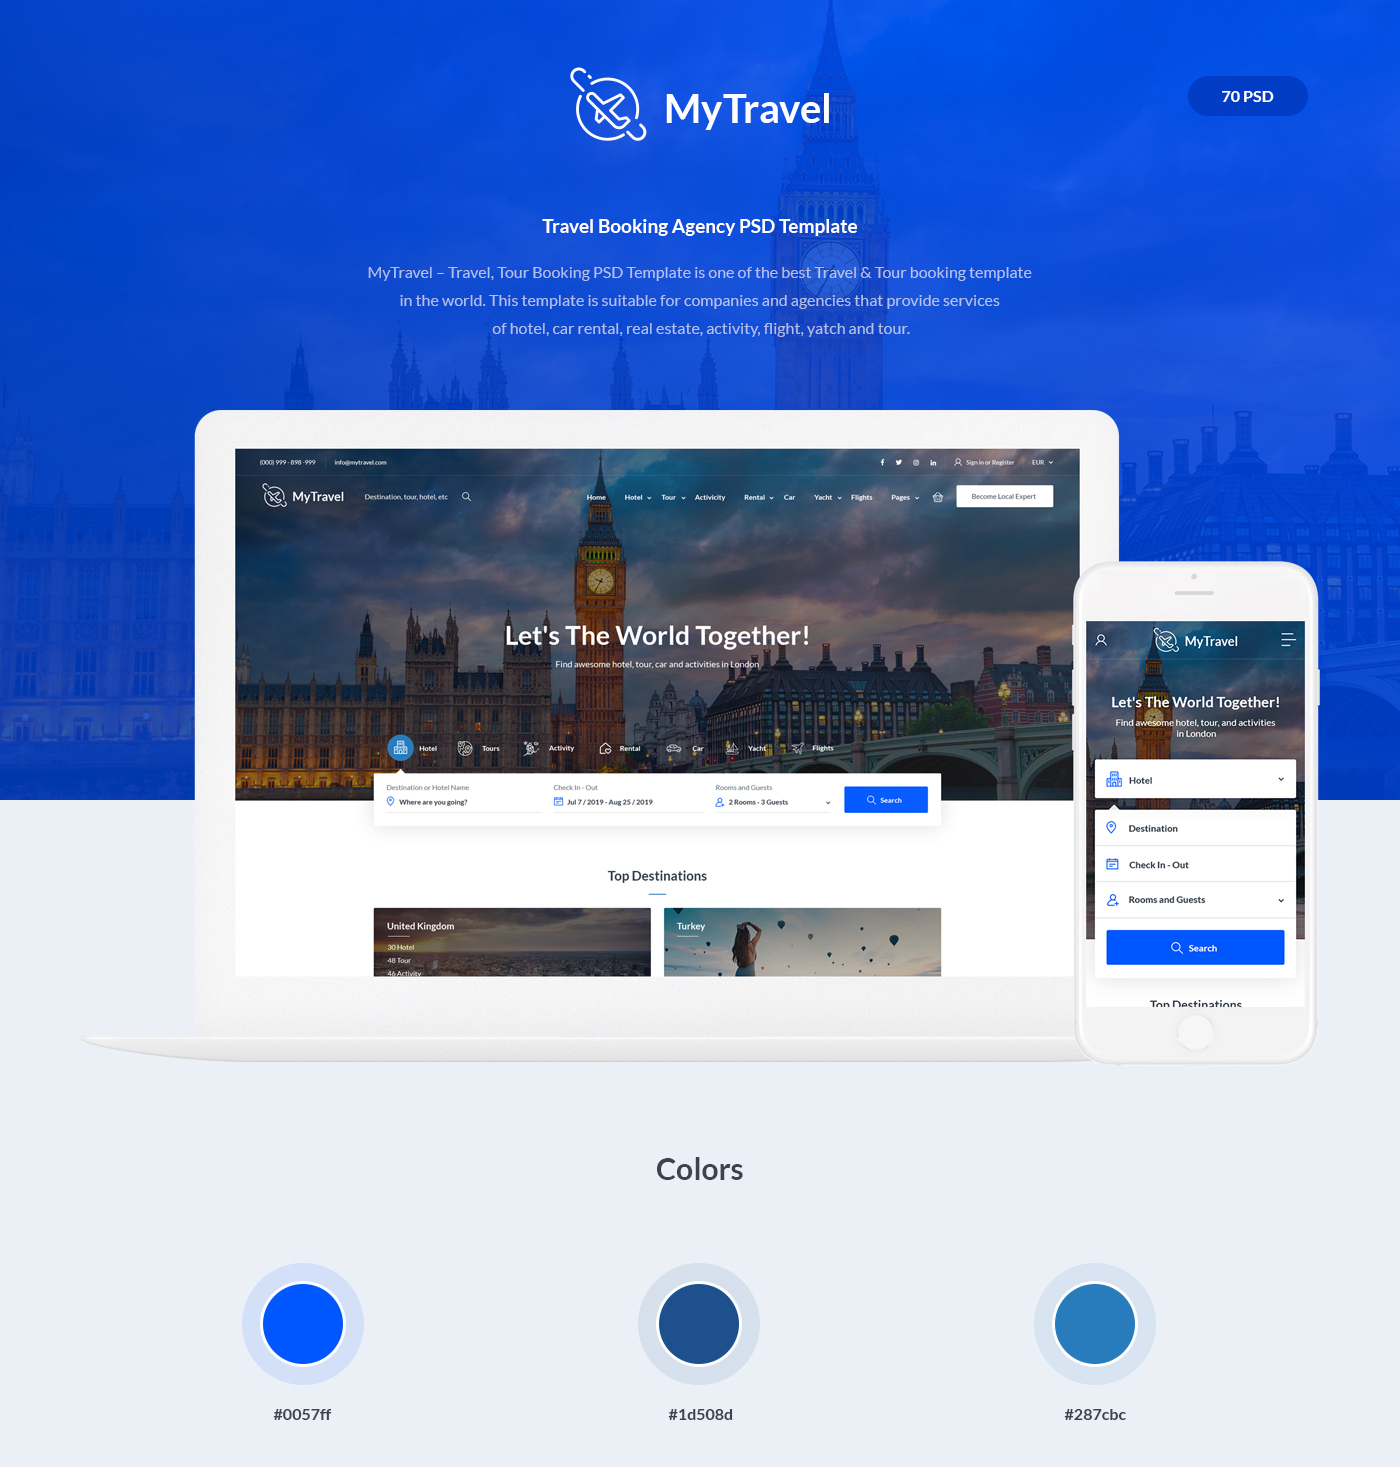 Travel Booking Agency PSD Template - 1